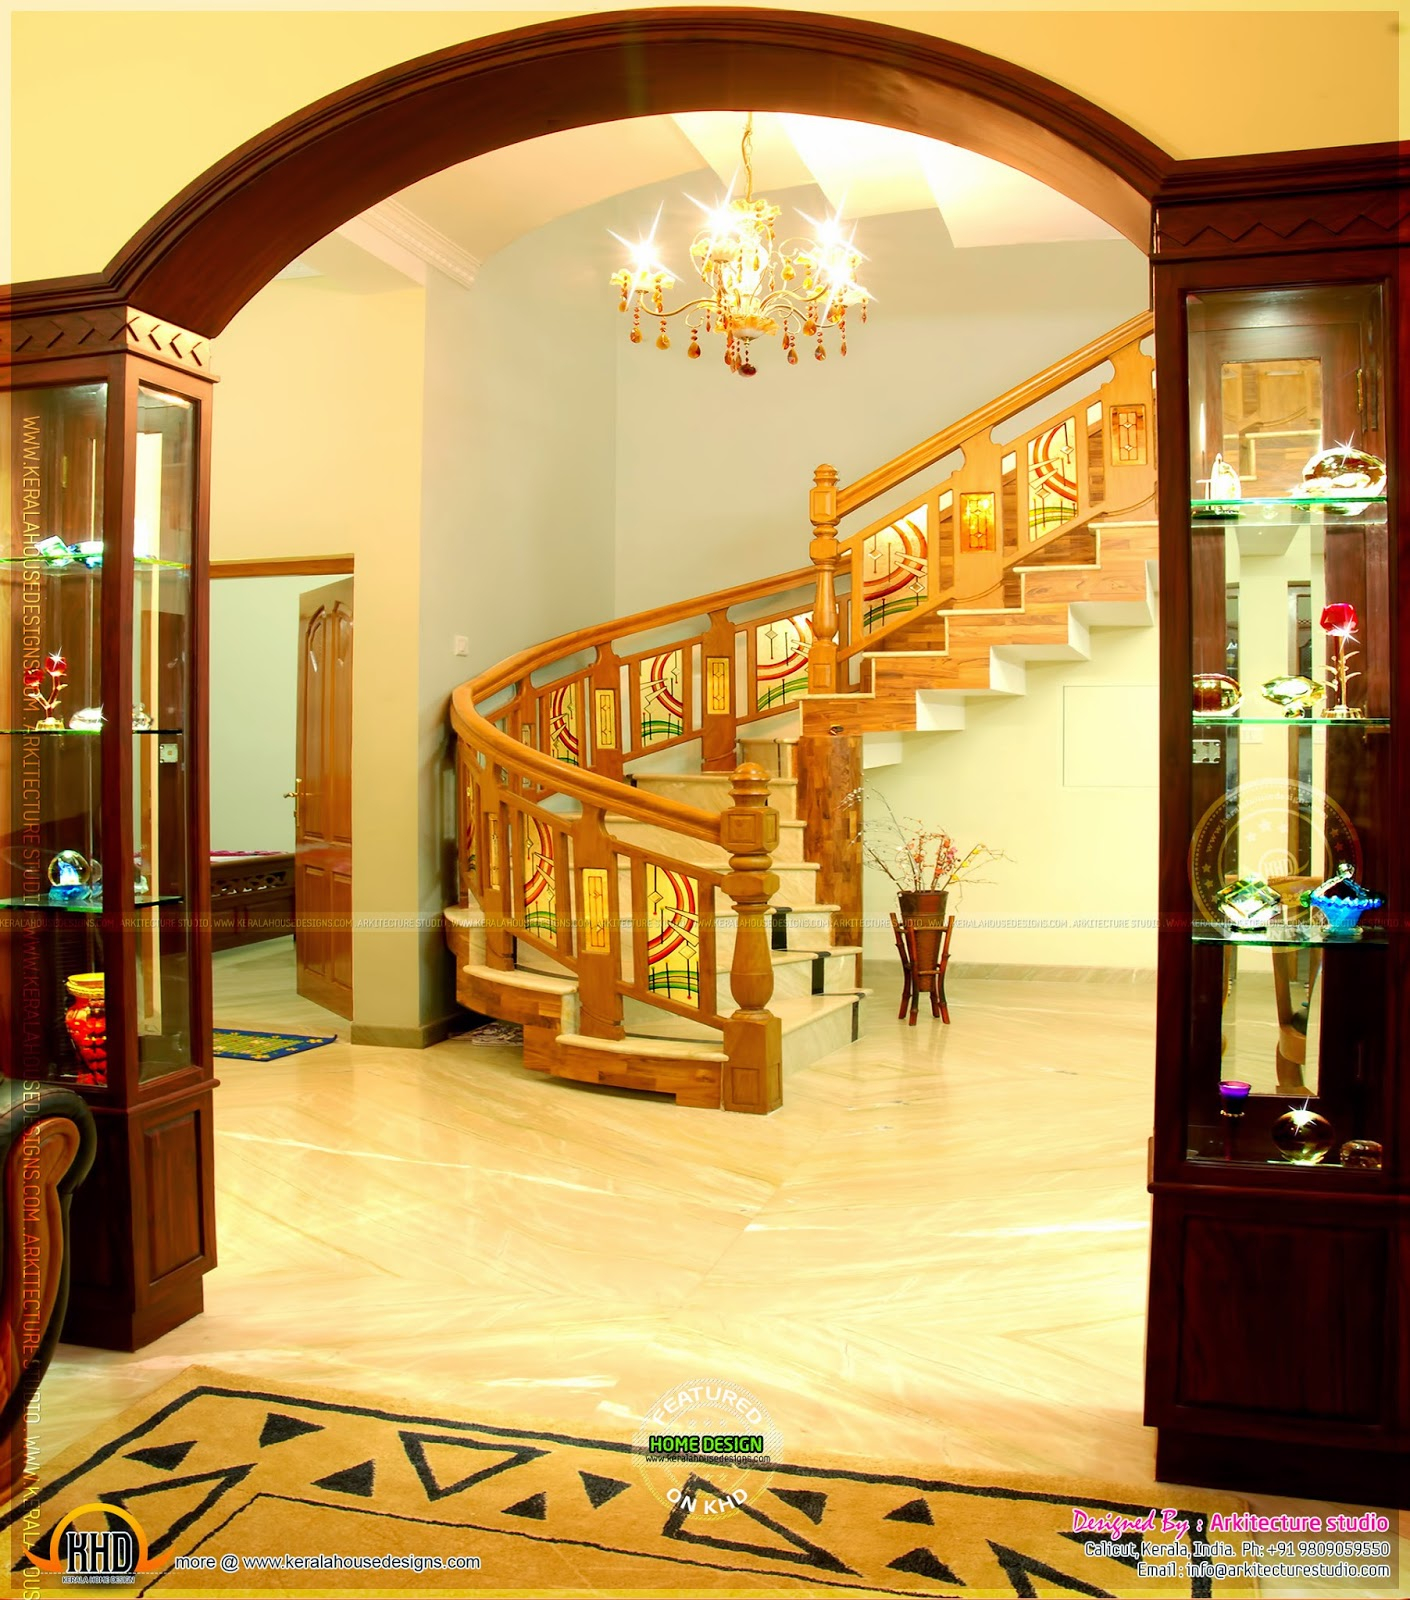 Real house in kerala with interior photos kerala home for House interior design photos